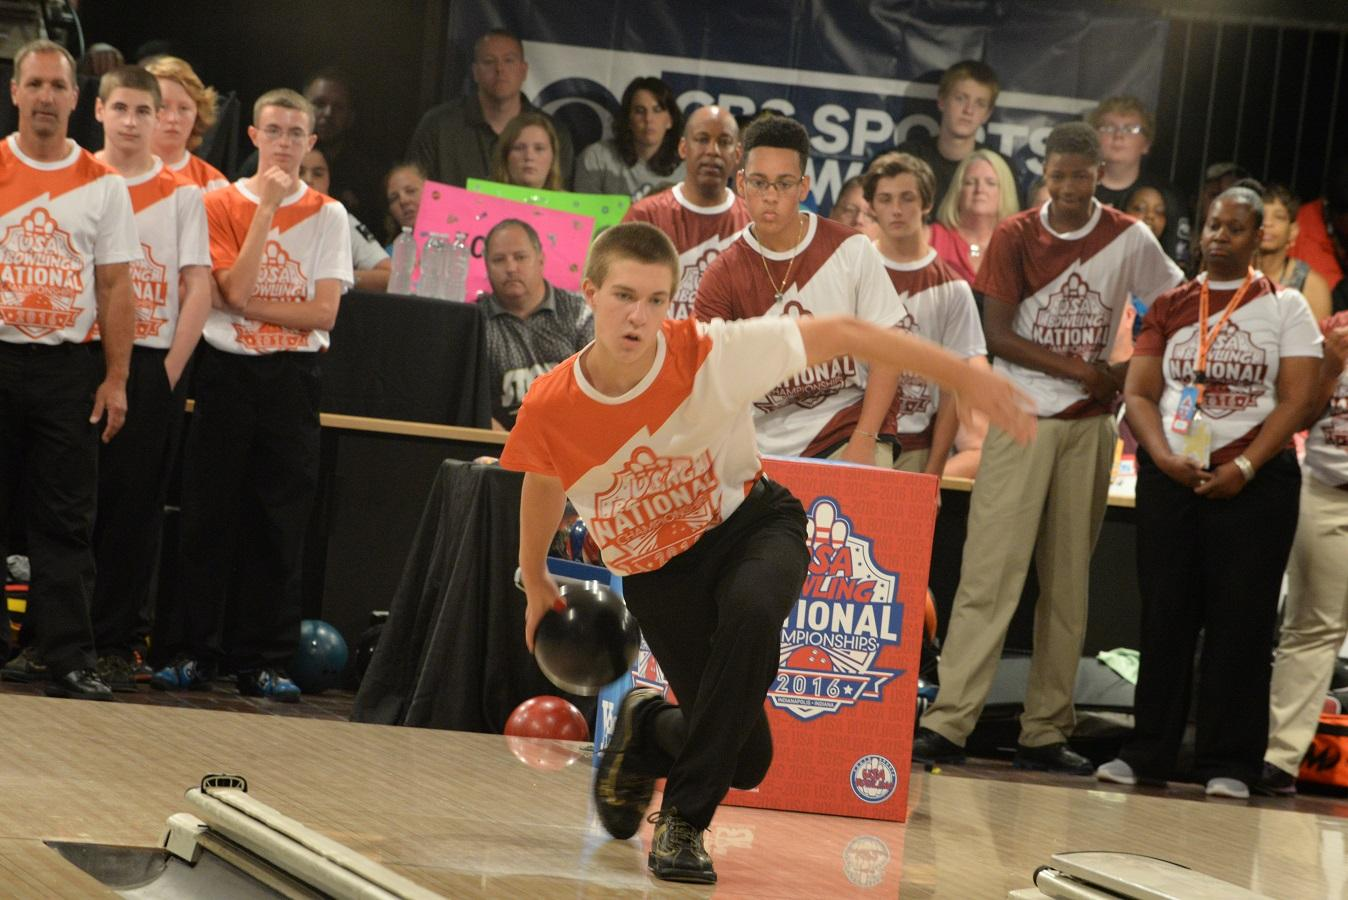 USA Bowling National Championships to Kick Off Tomorrow in Dallas